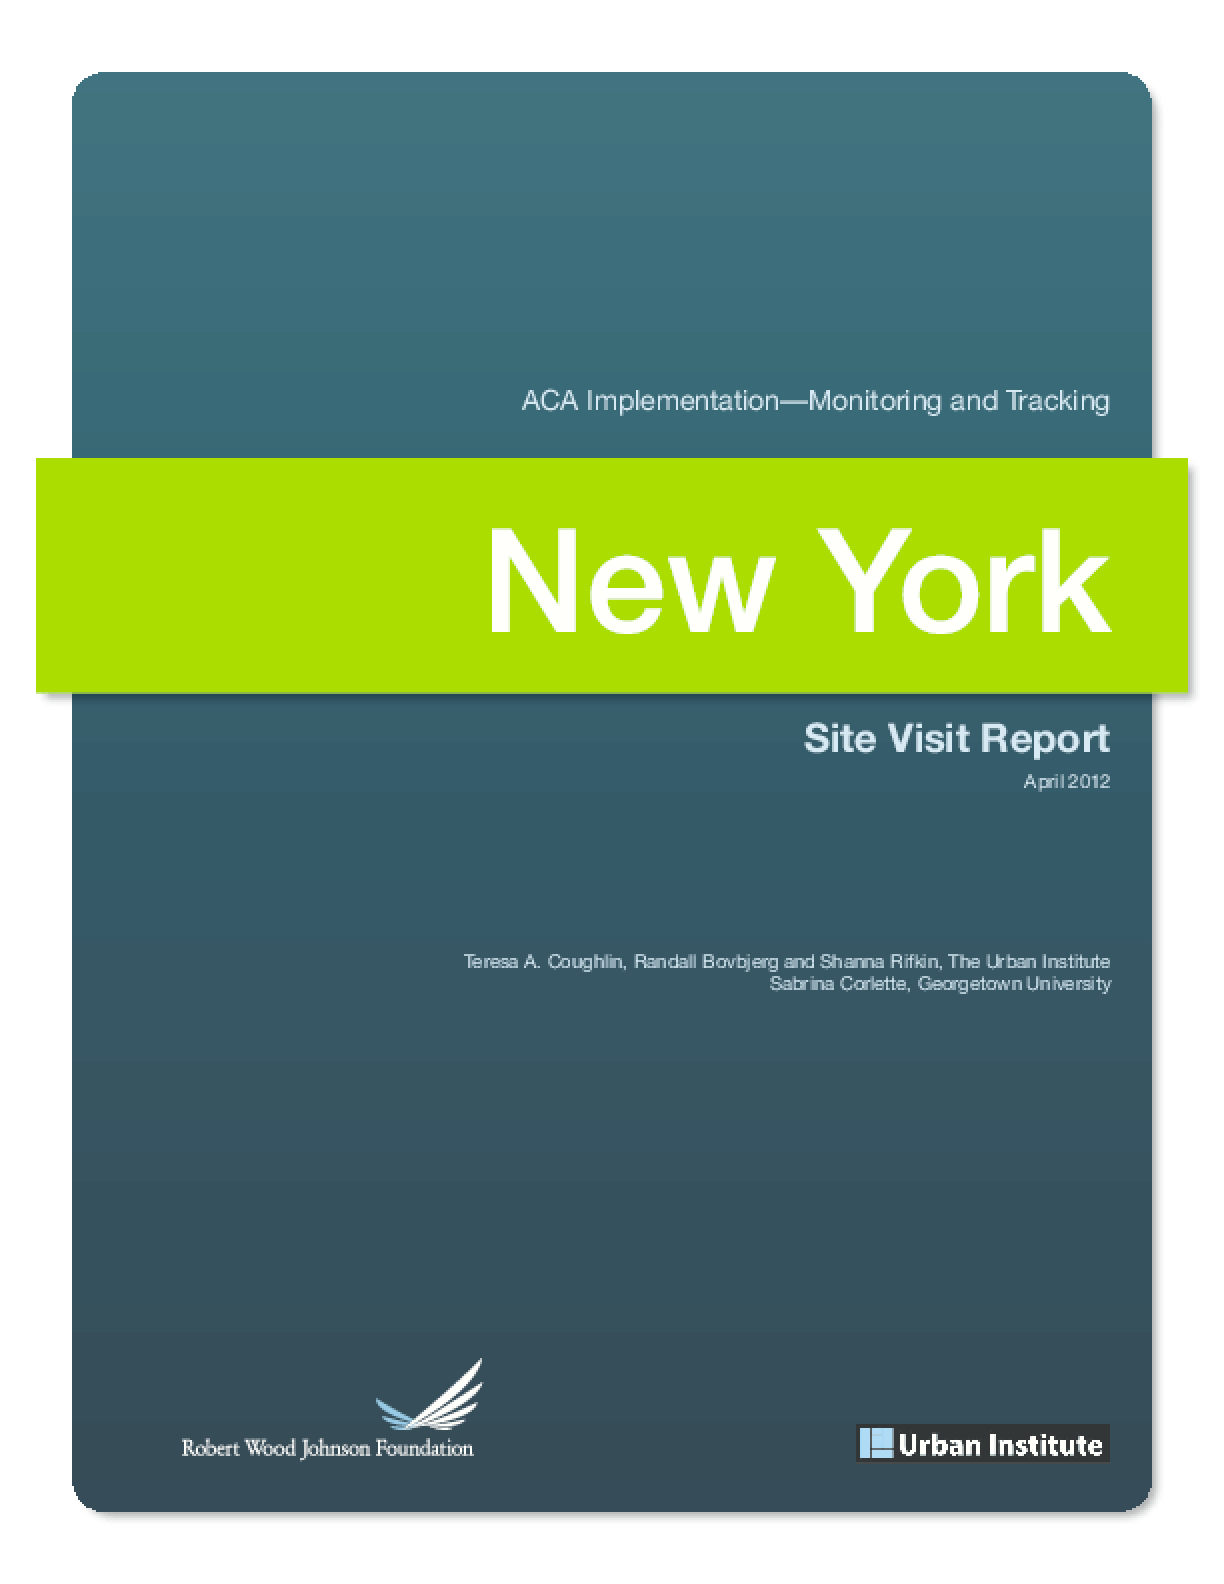 ACA Implementation Monitoring and Tracking: New York Site Visit Report